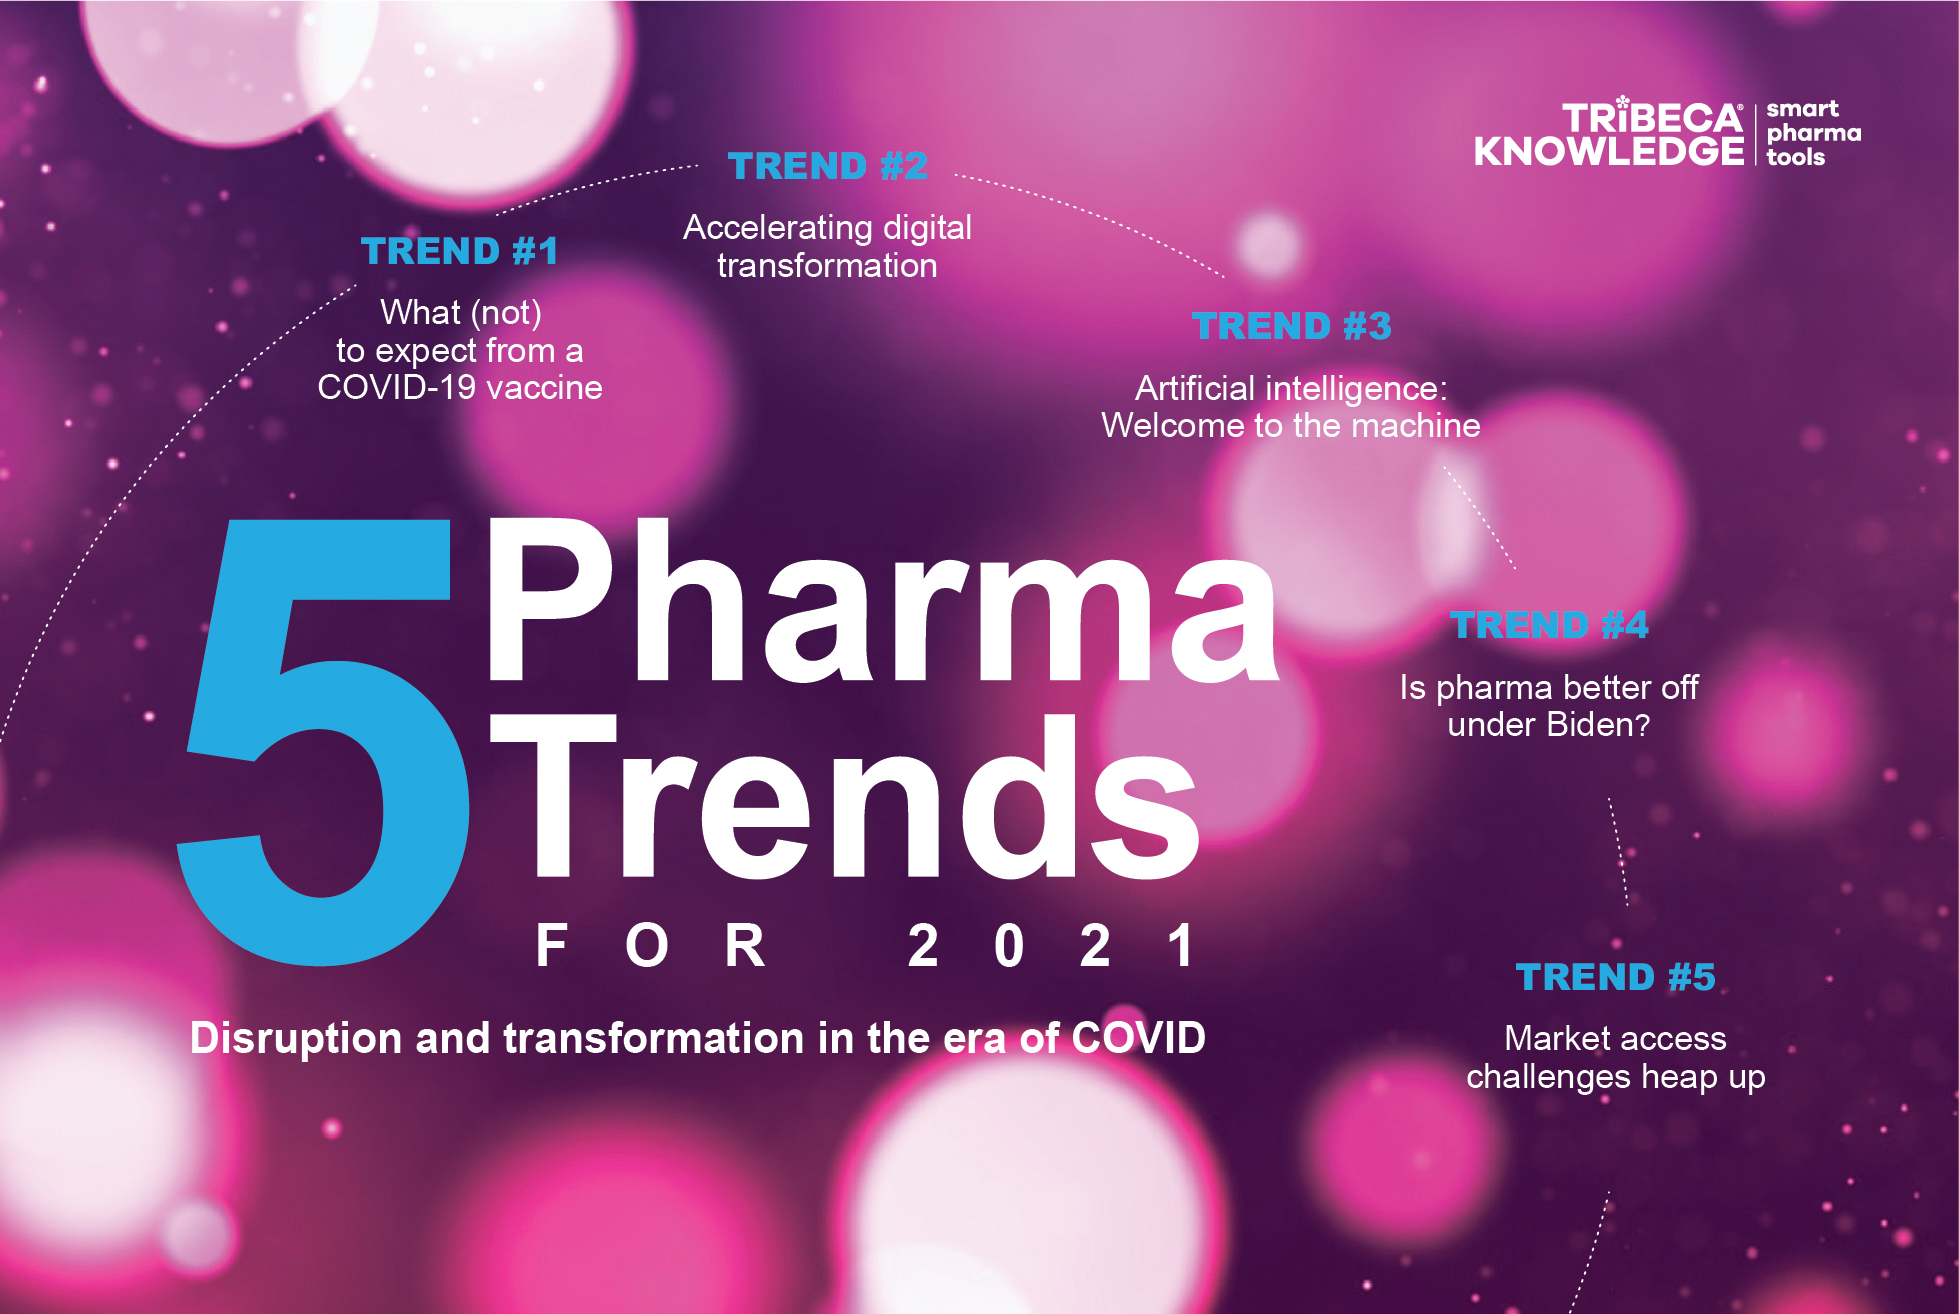 TRiBECA_Knowledge_5_Pharma Trends_for_2021